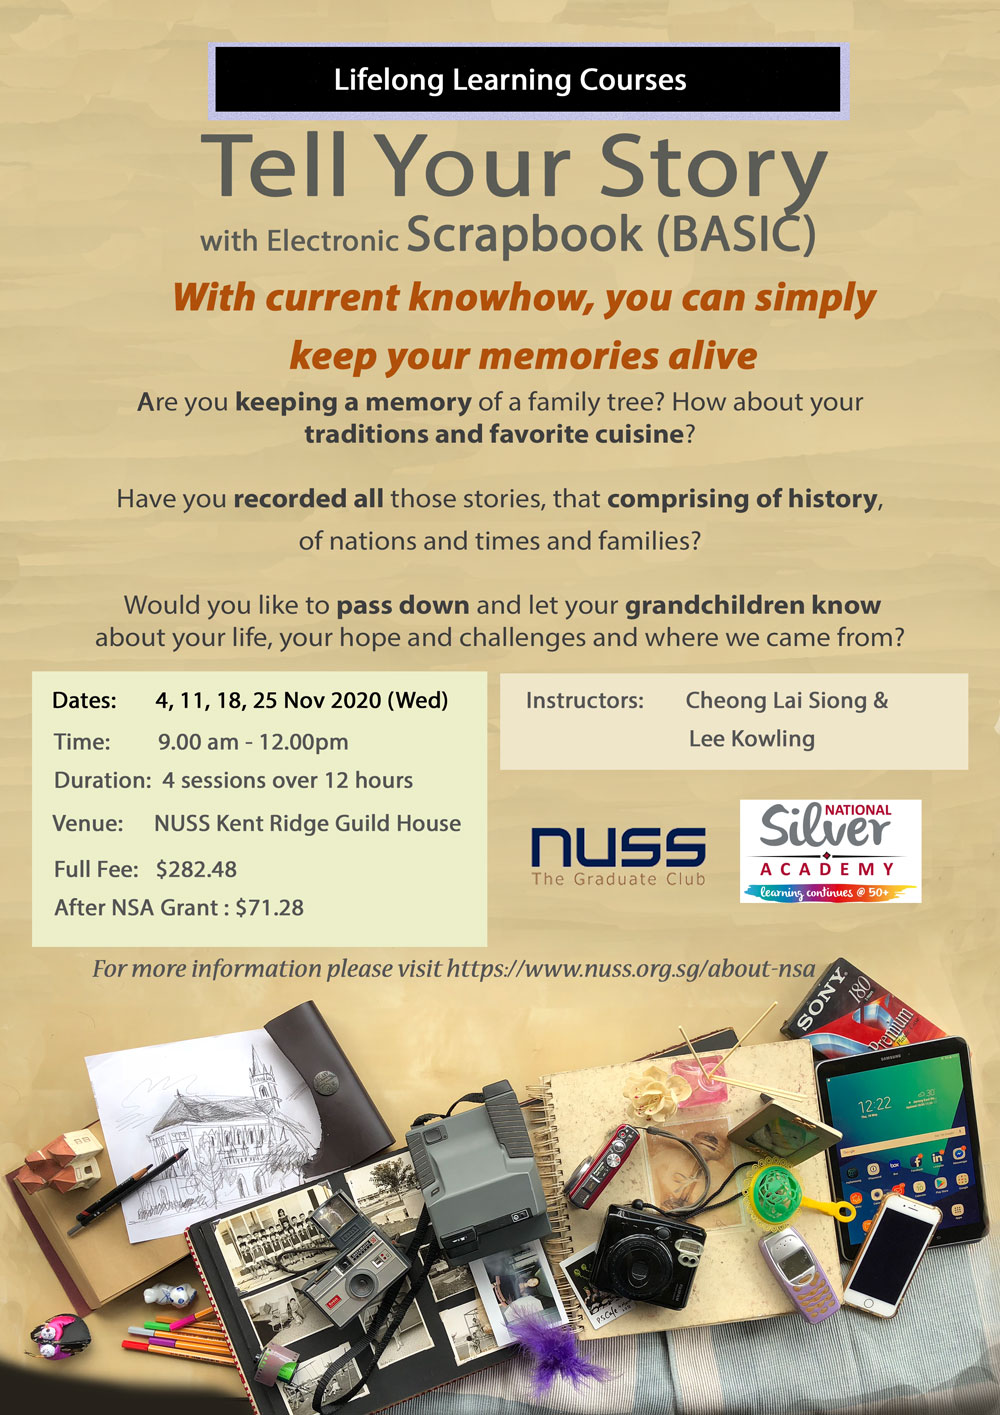 NUSS-BASIC-Class Tell Your Story with eScrapbook